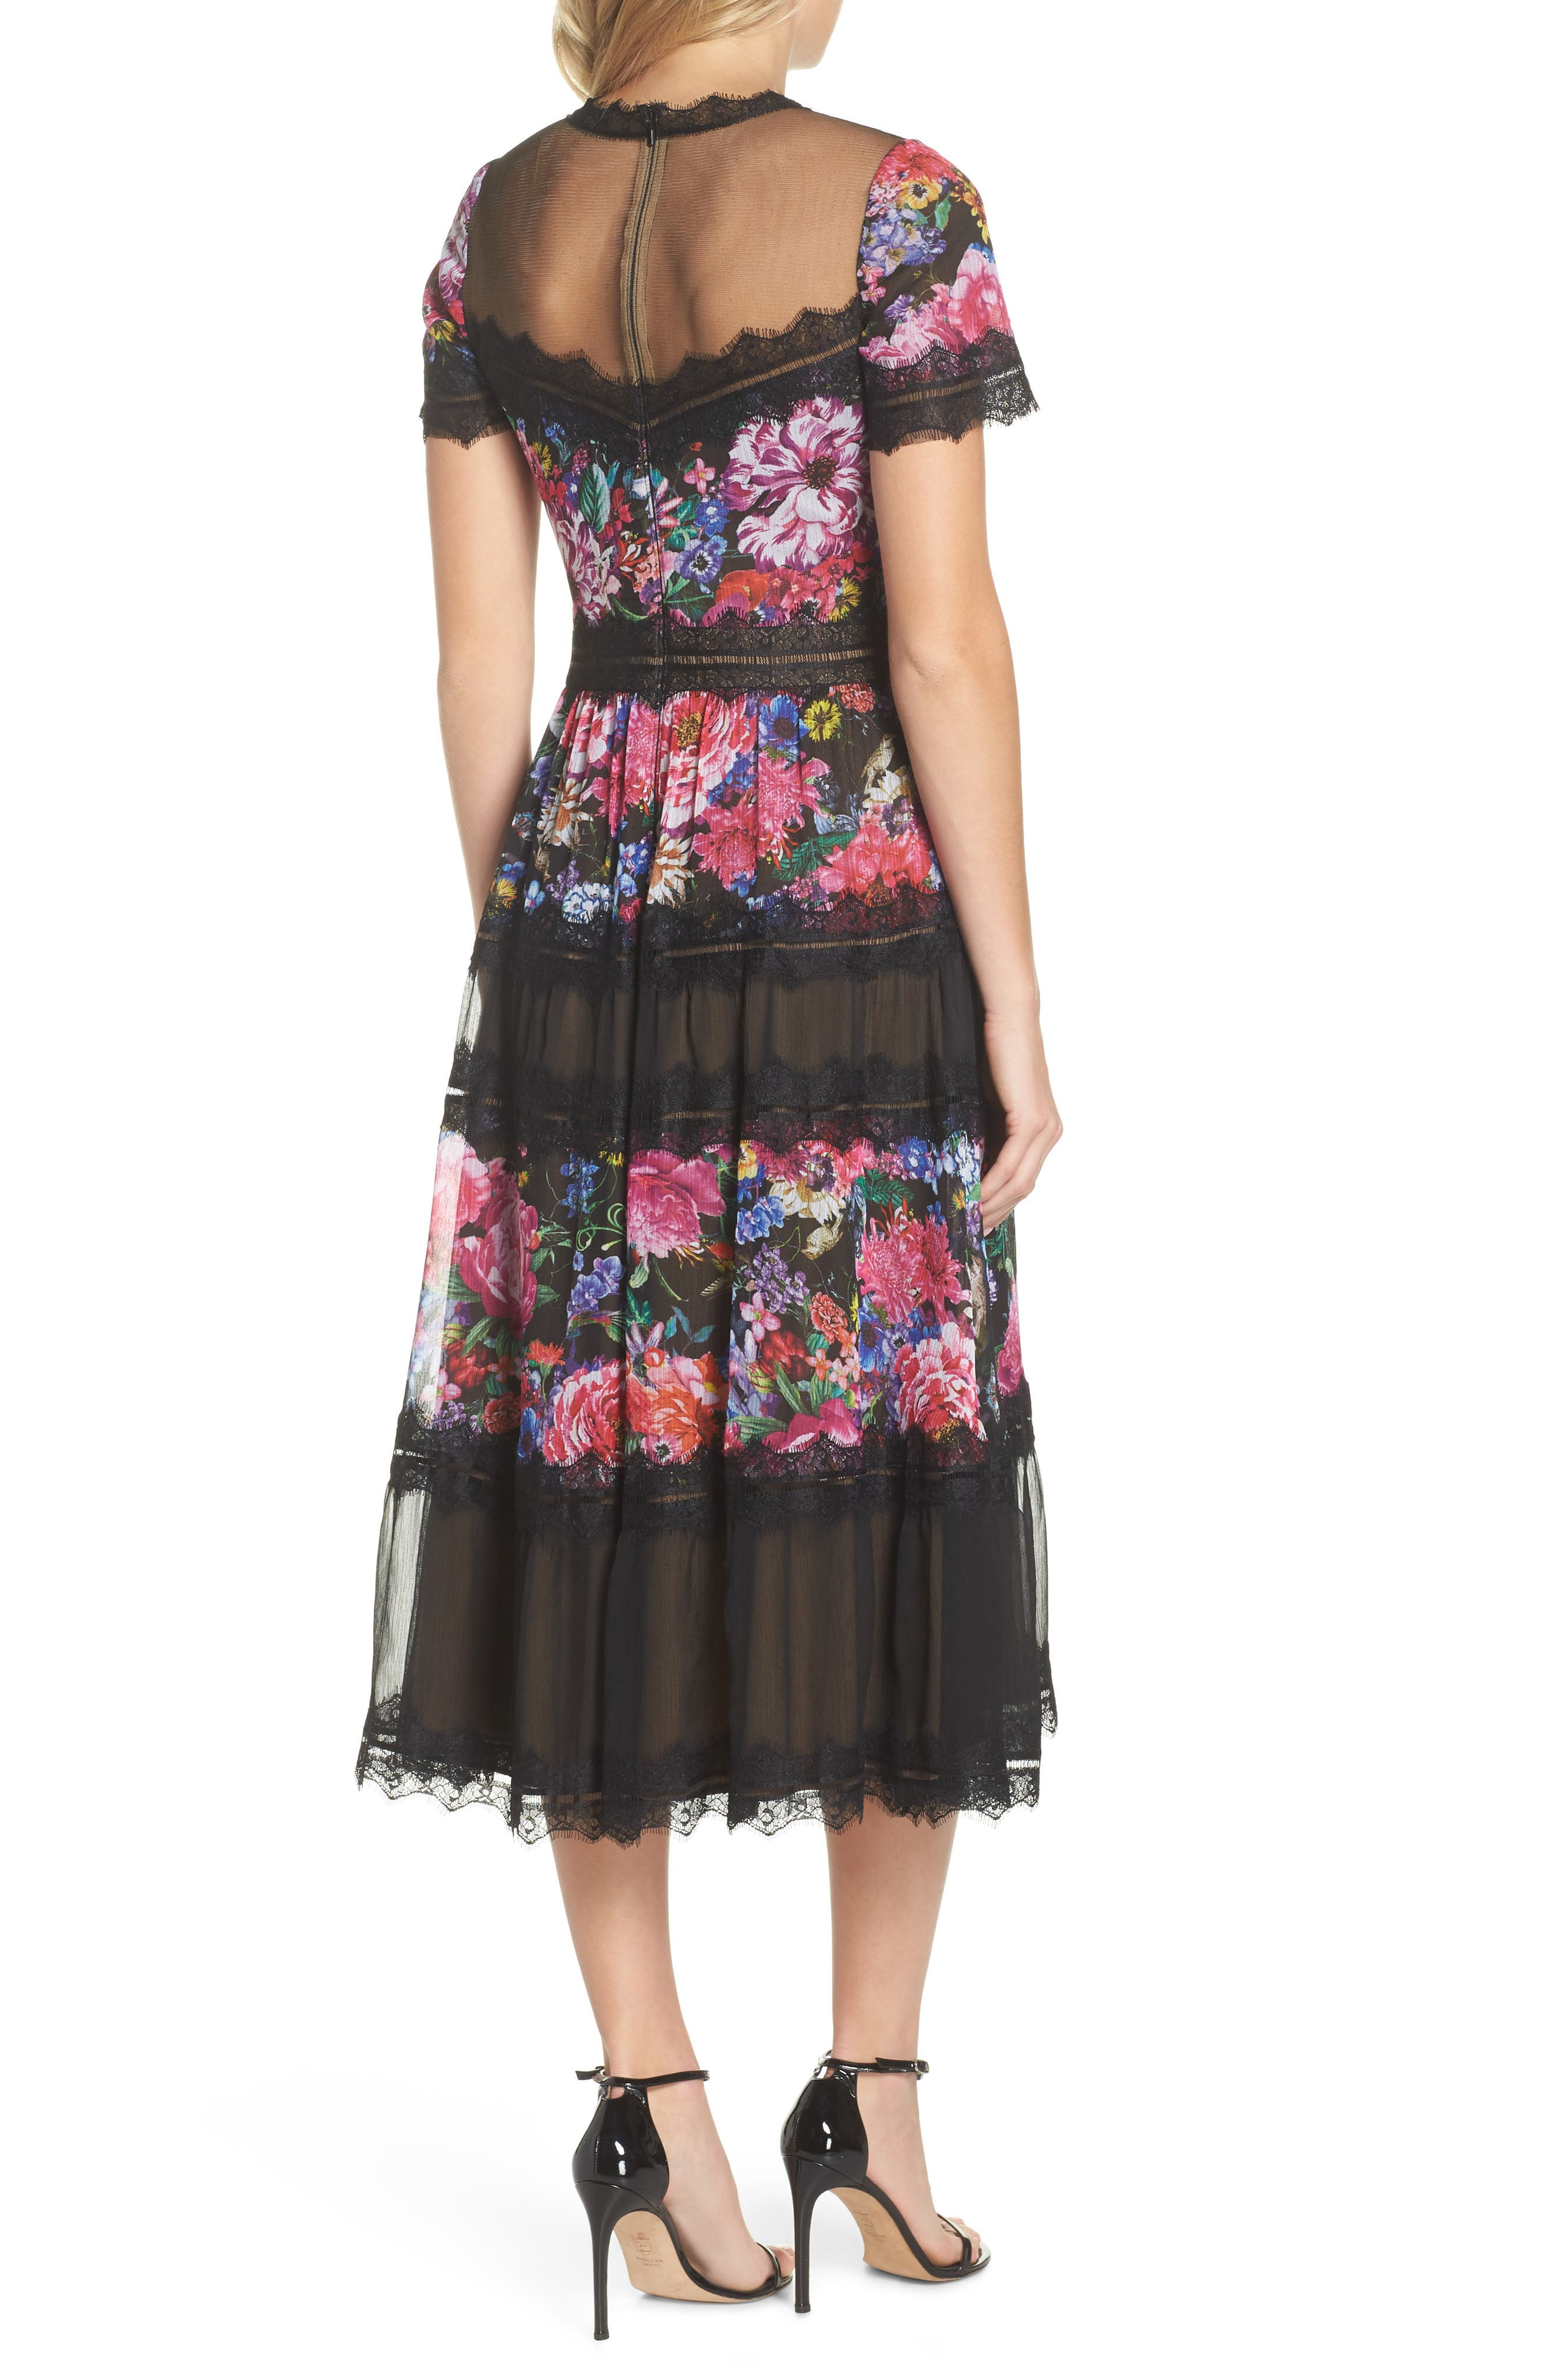 Lace Floral Midi Dress,                             Alternate thumbnail 2, color,                             Black/ Floral